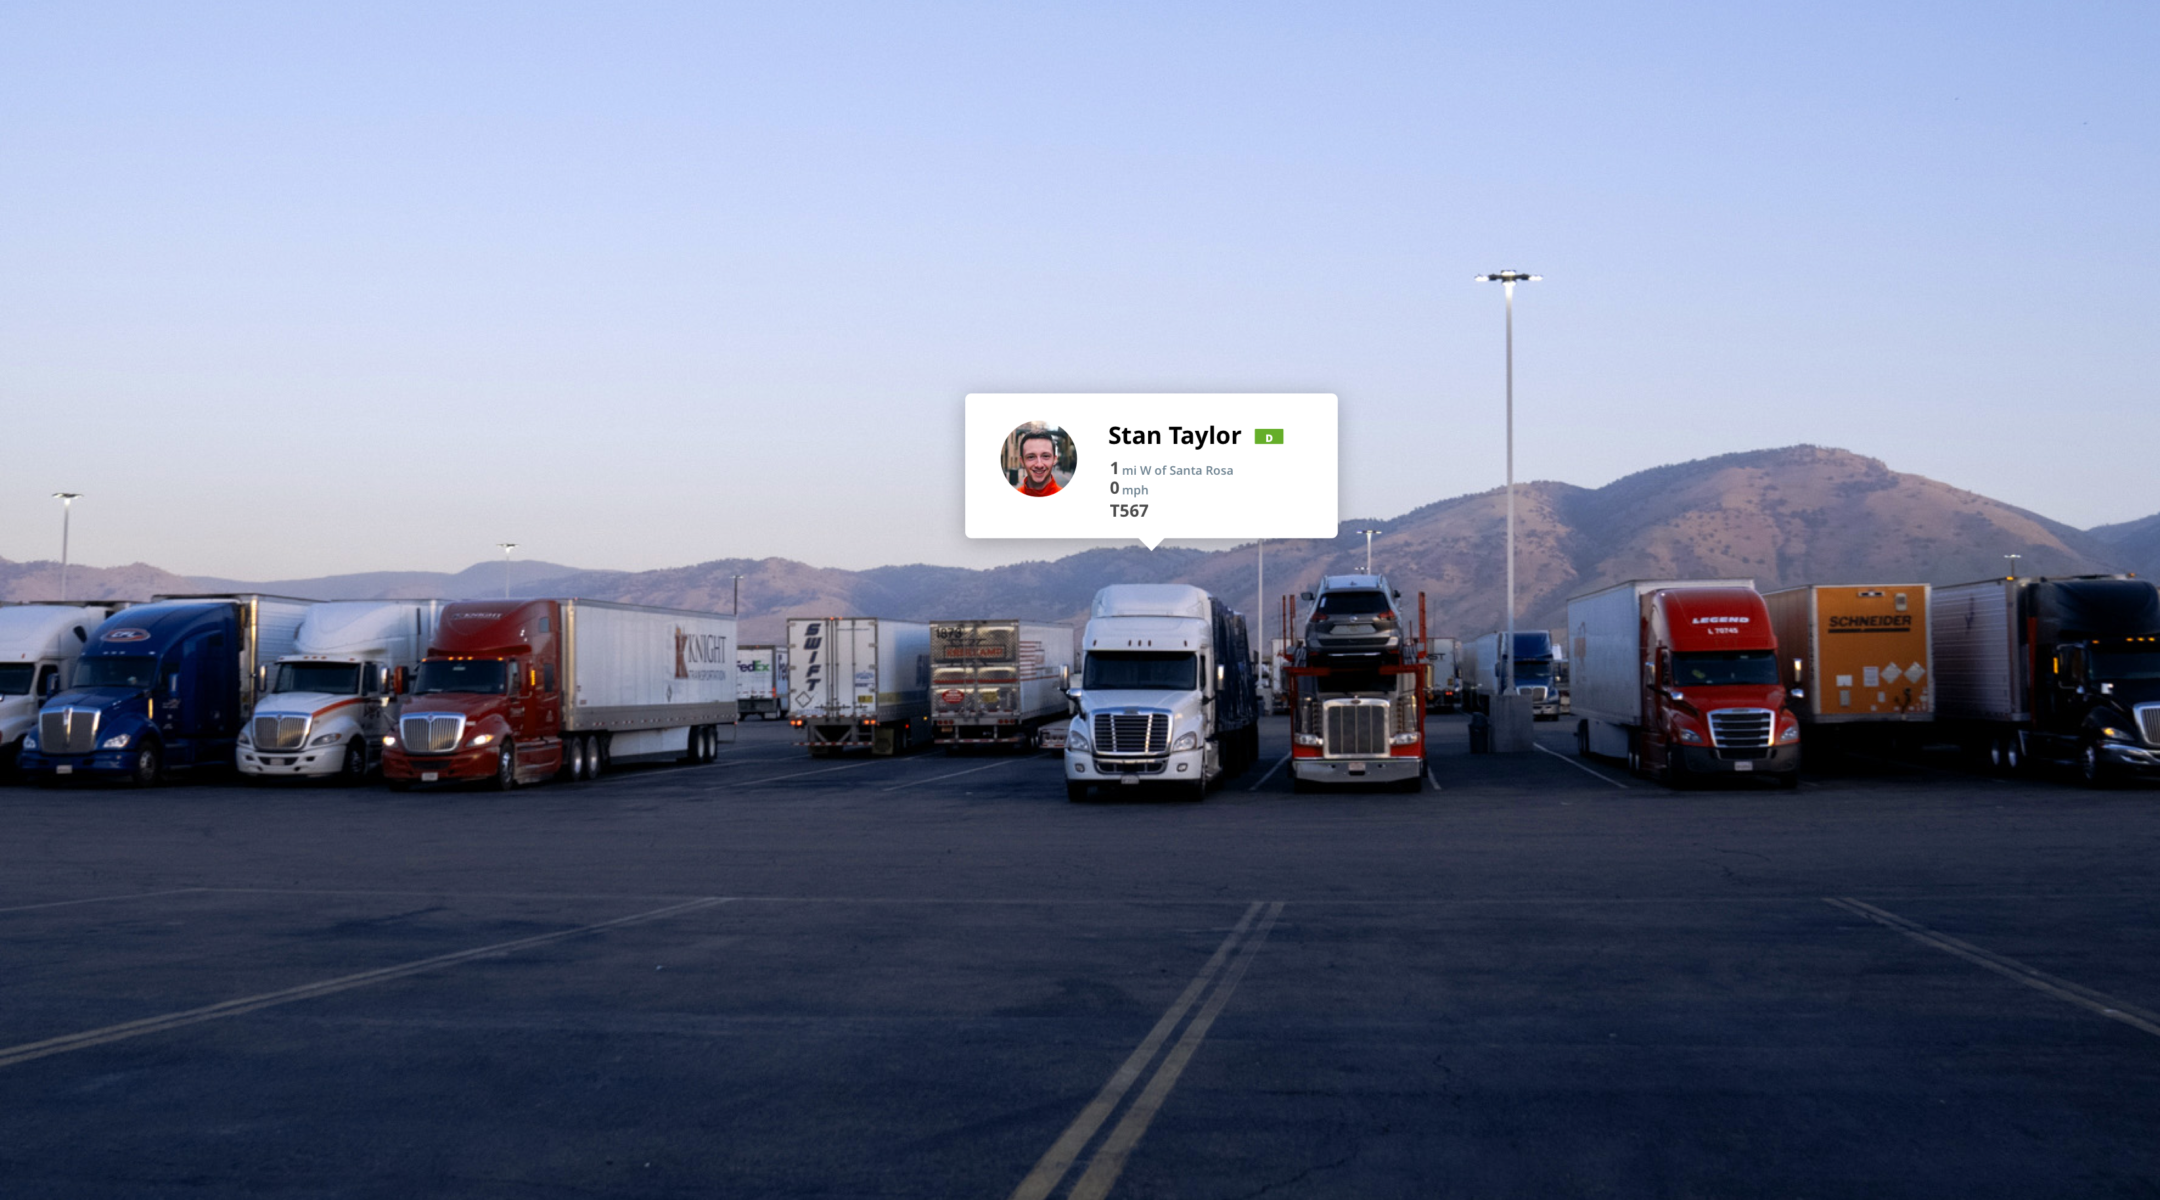 Introducing the KeepTruckin Asset Gateway and dual-facing Smart Dashcam